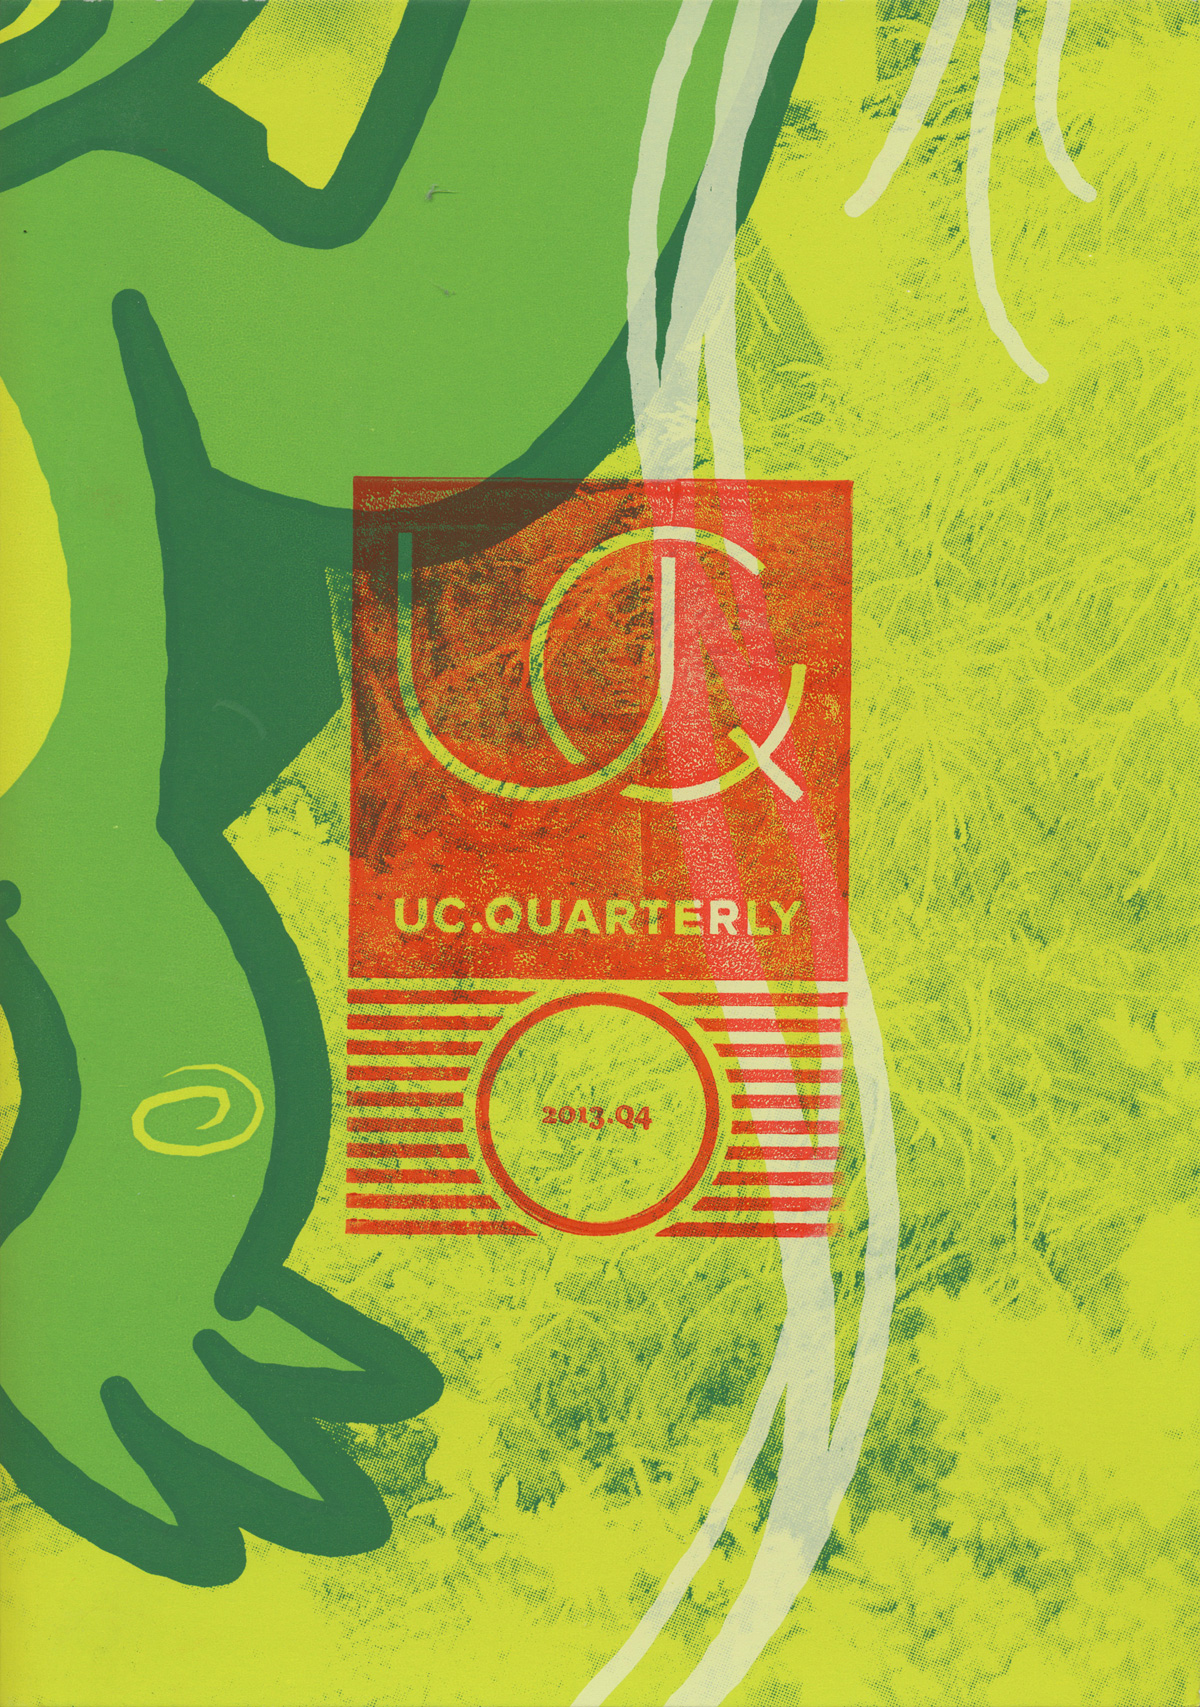 UC.Quarterly